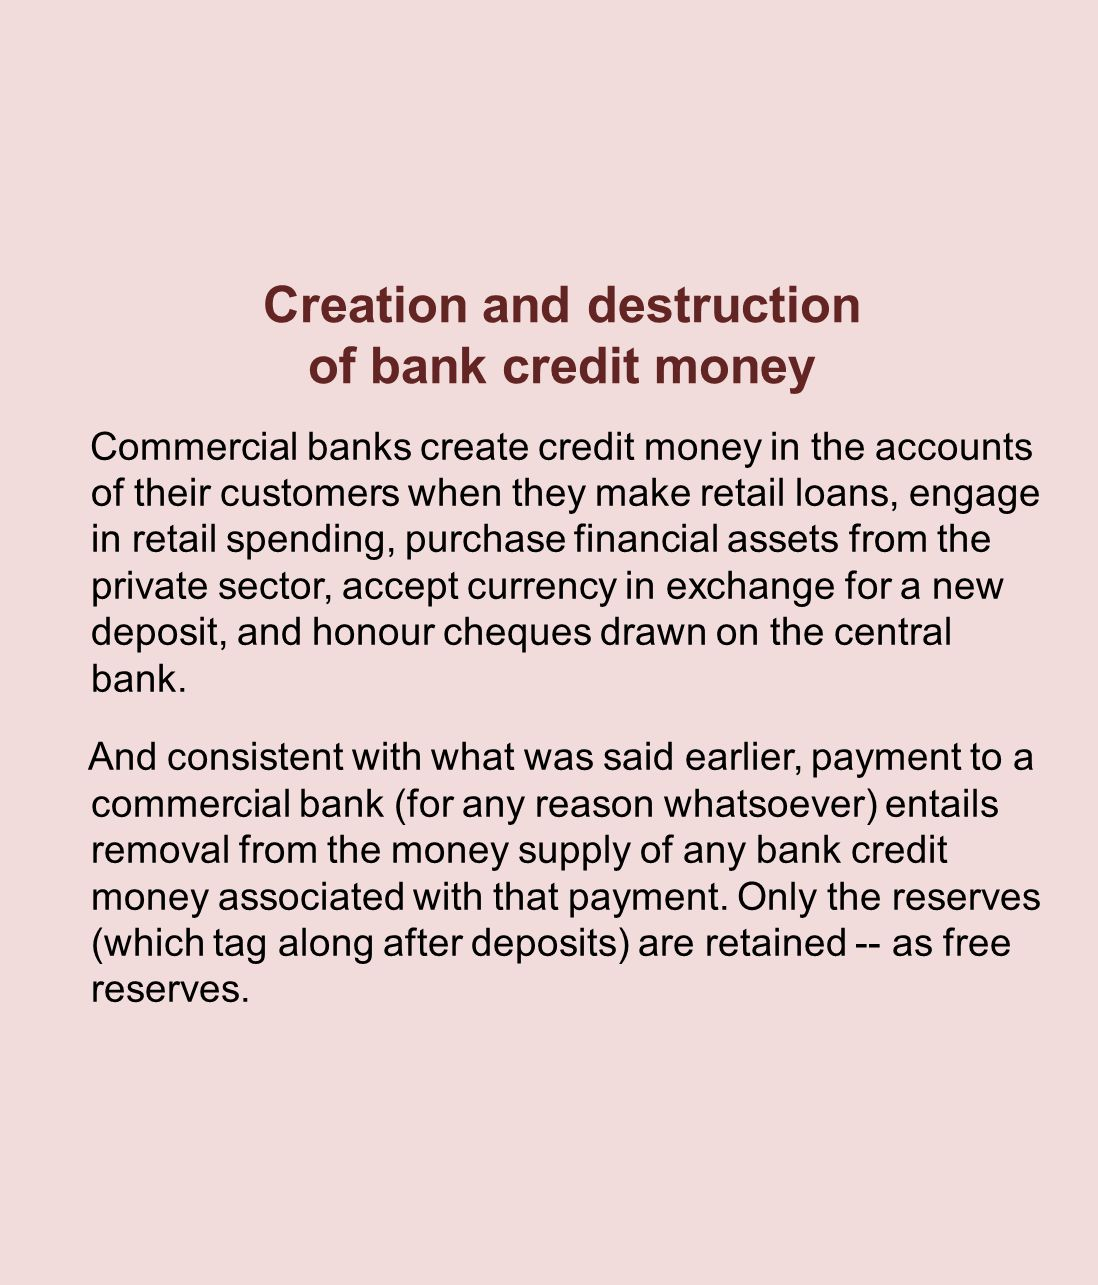 Creation and destruction of bank credit money Commercial banks create credit money in the accounts of their customers when they make retail loans, engage in retail spending, purchase financial assets from the private sector, accept currency in exchange for a new deposit, and honour cheques drawn on the central bank.